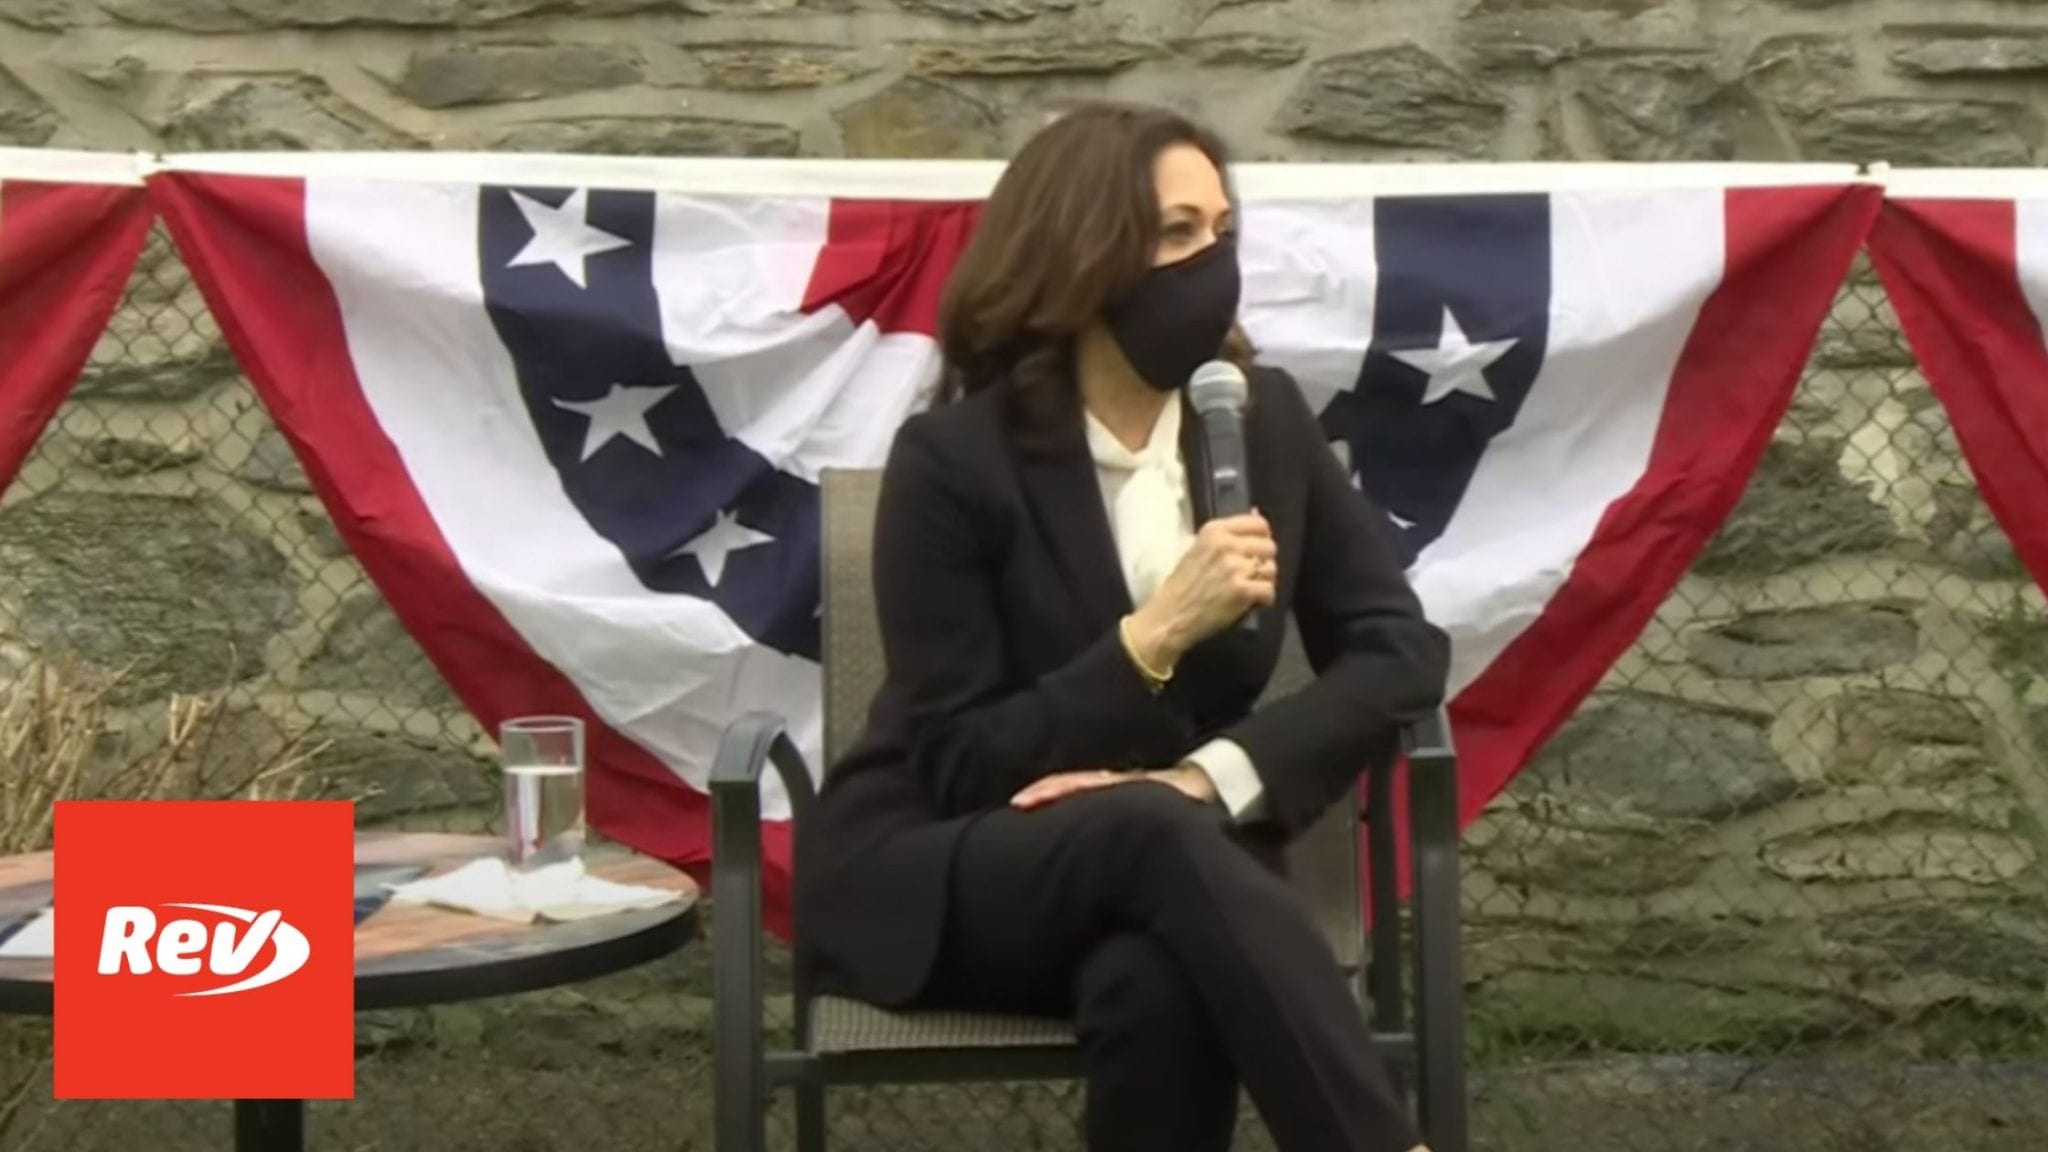 Kamala Harris Campaign Event Transcript September 17: 'Sister to Sister: Mobilizing in Action'